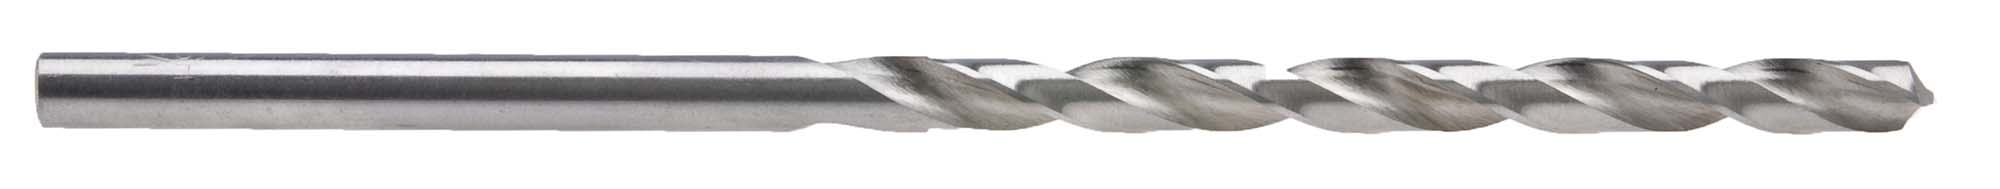 "X (.397"") ""Taper Length"" Long Straight Shank Drill Bit, High Speed Steel"